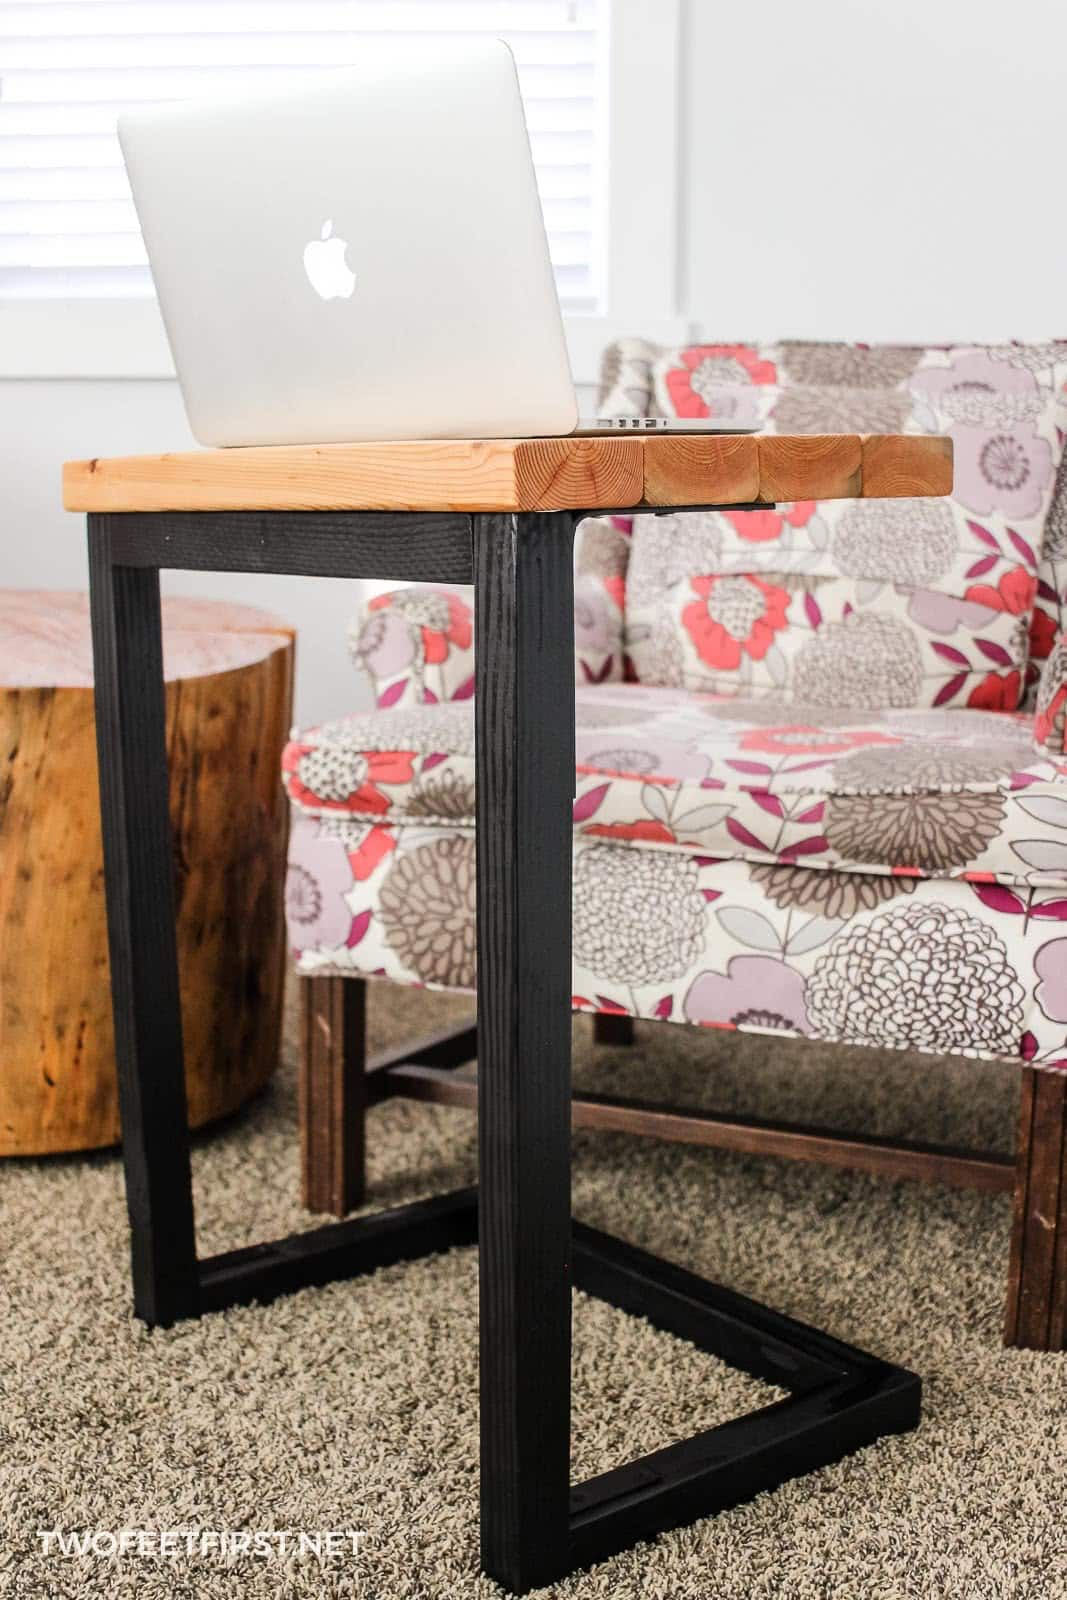 Diy Laptop Sofa Table A Great Gift Idea Sofa Table Diy Sofa Table Diy Sofa